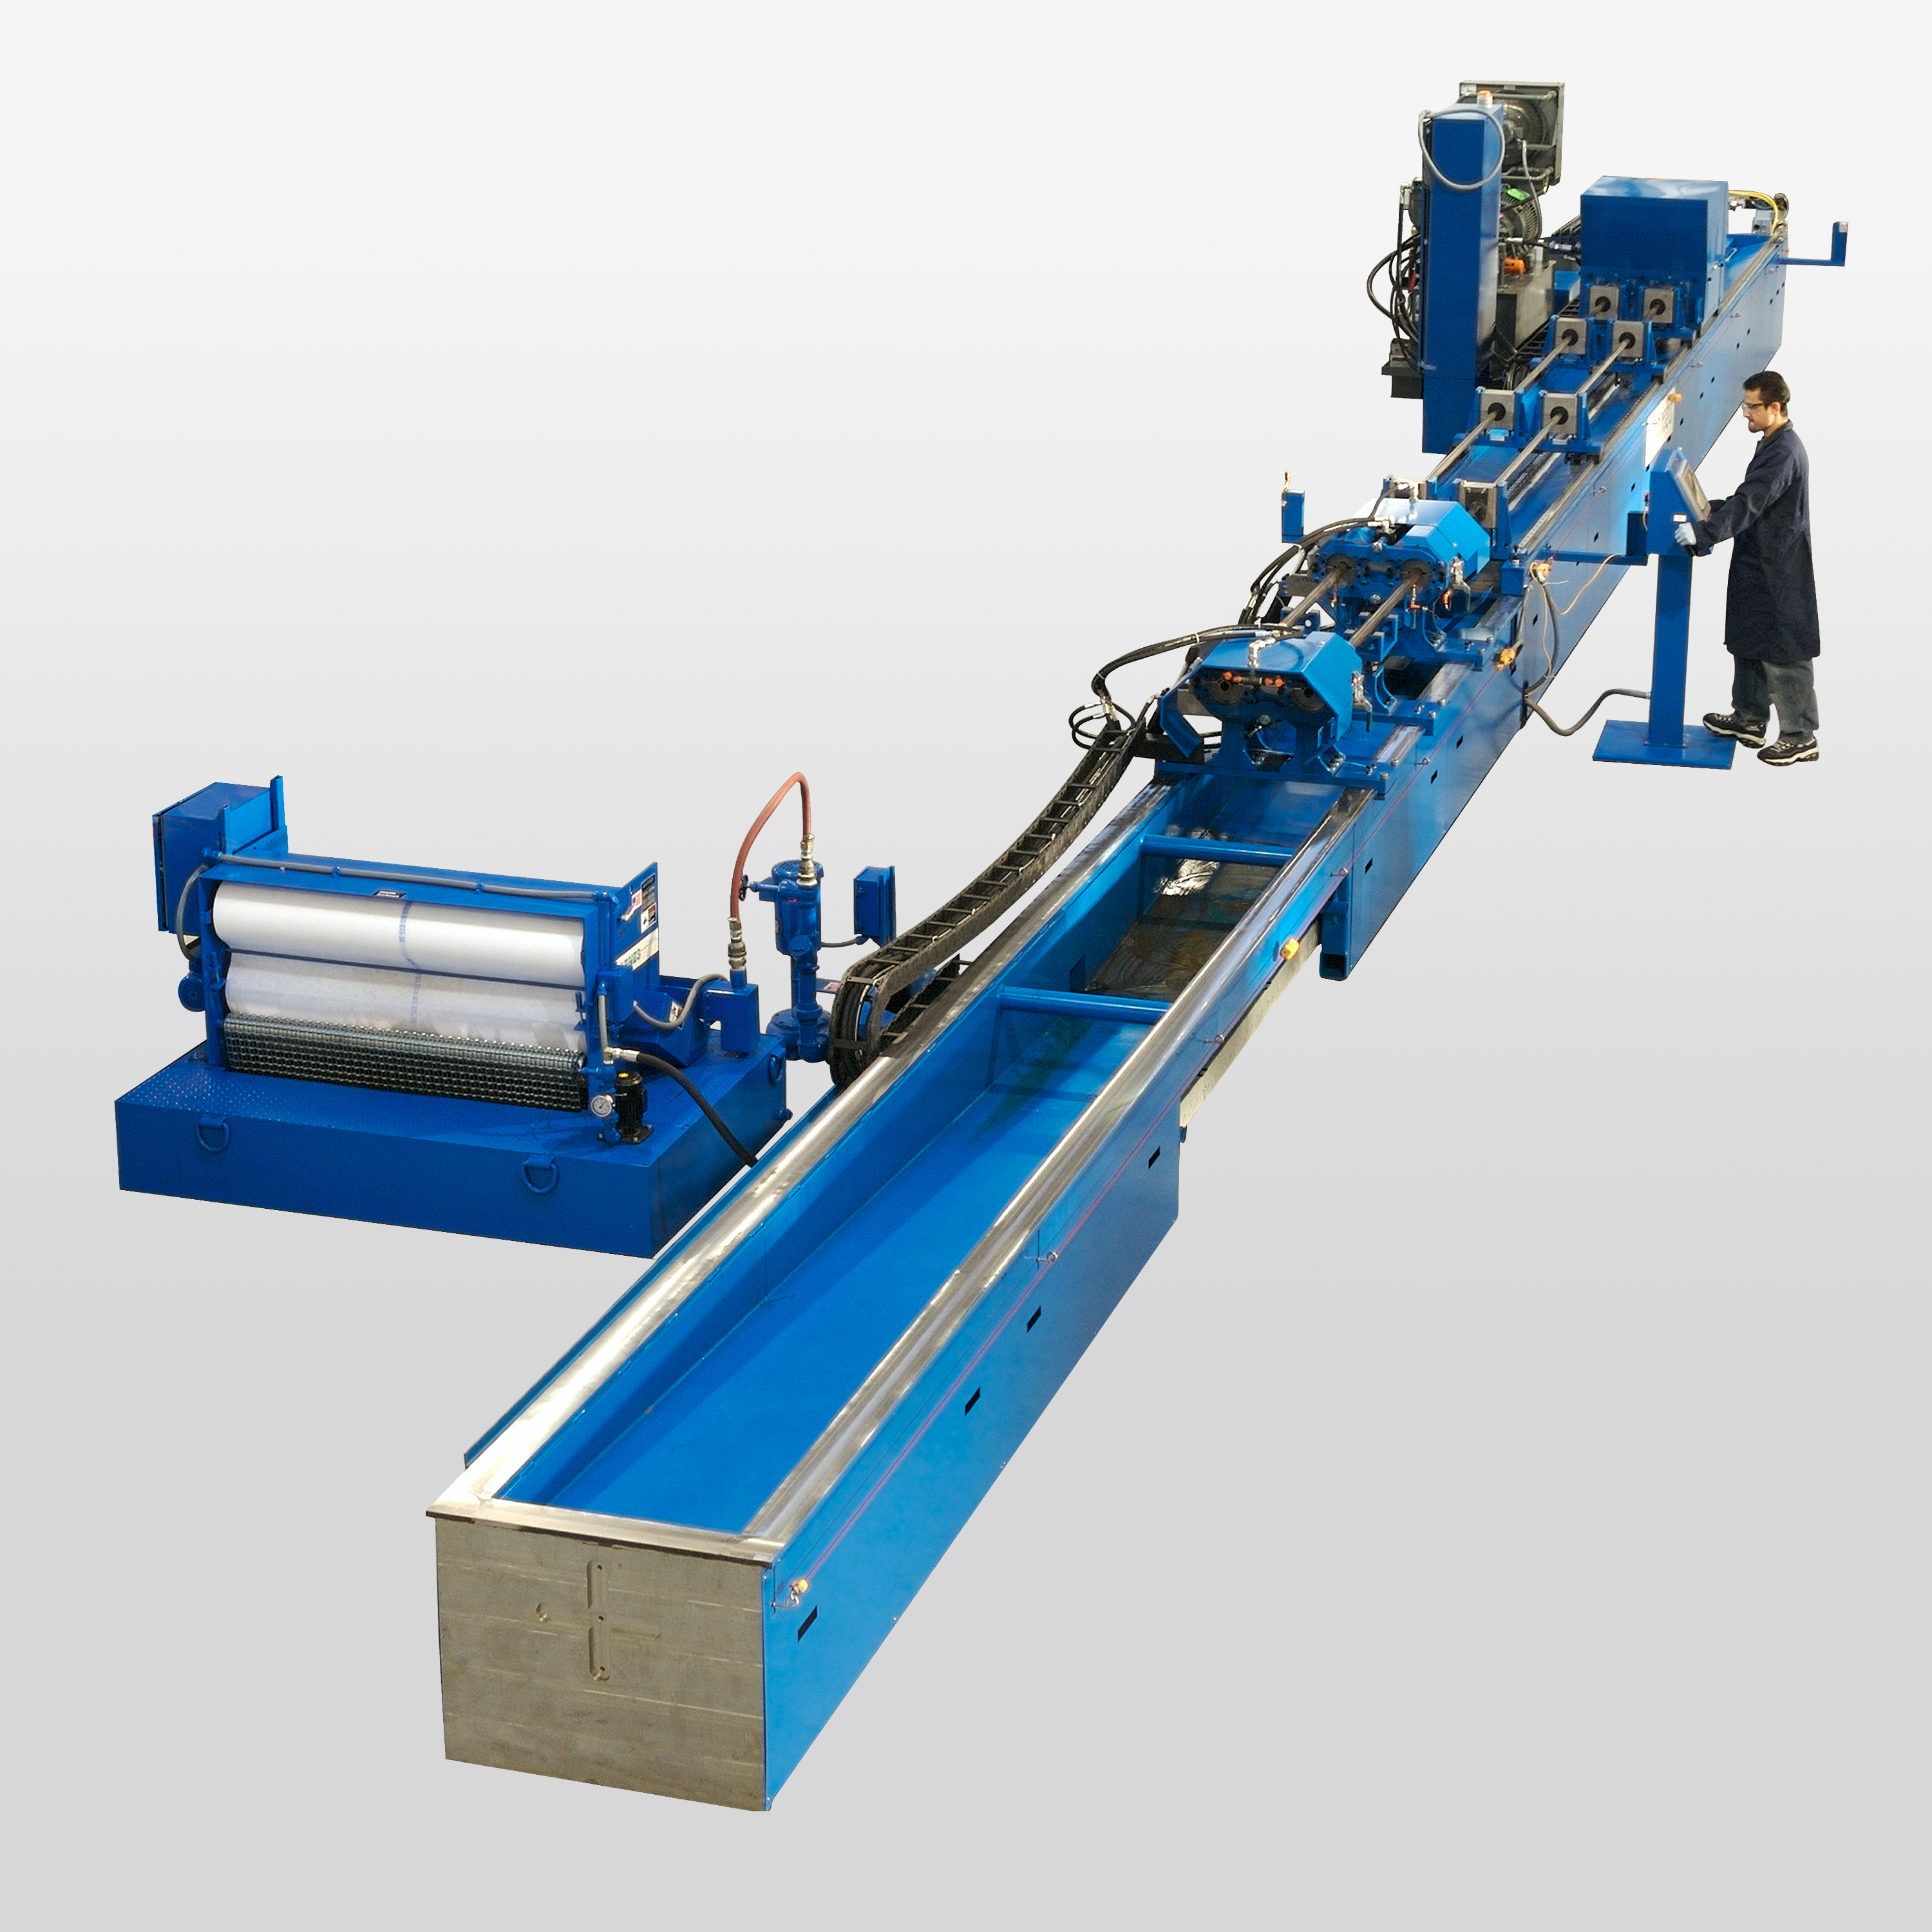 HH-12-2S Bore Honing Machines